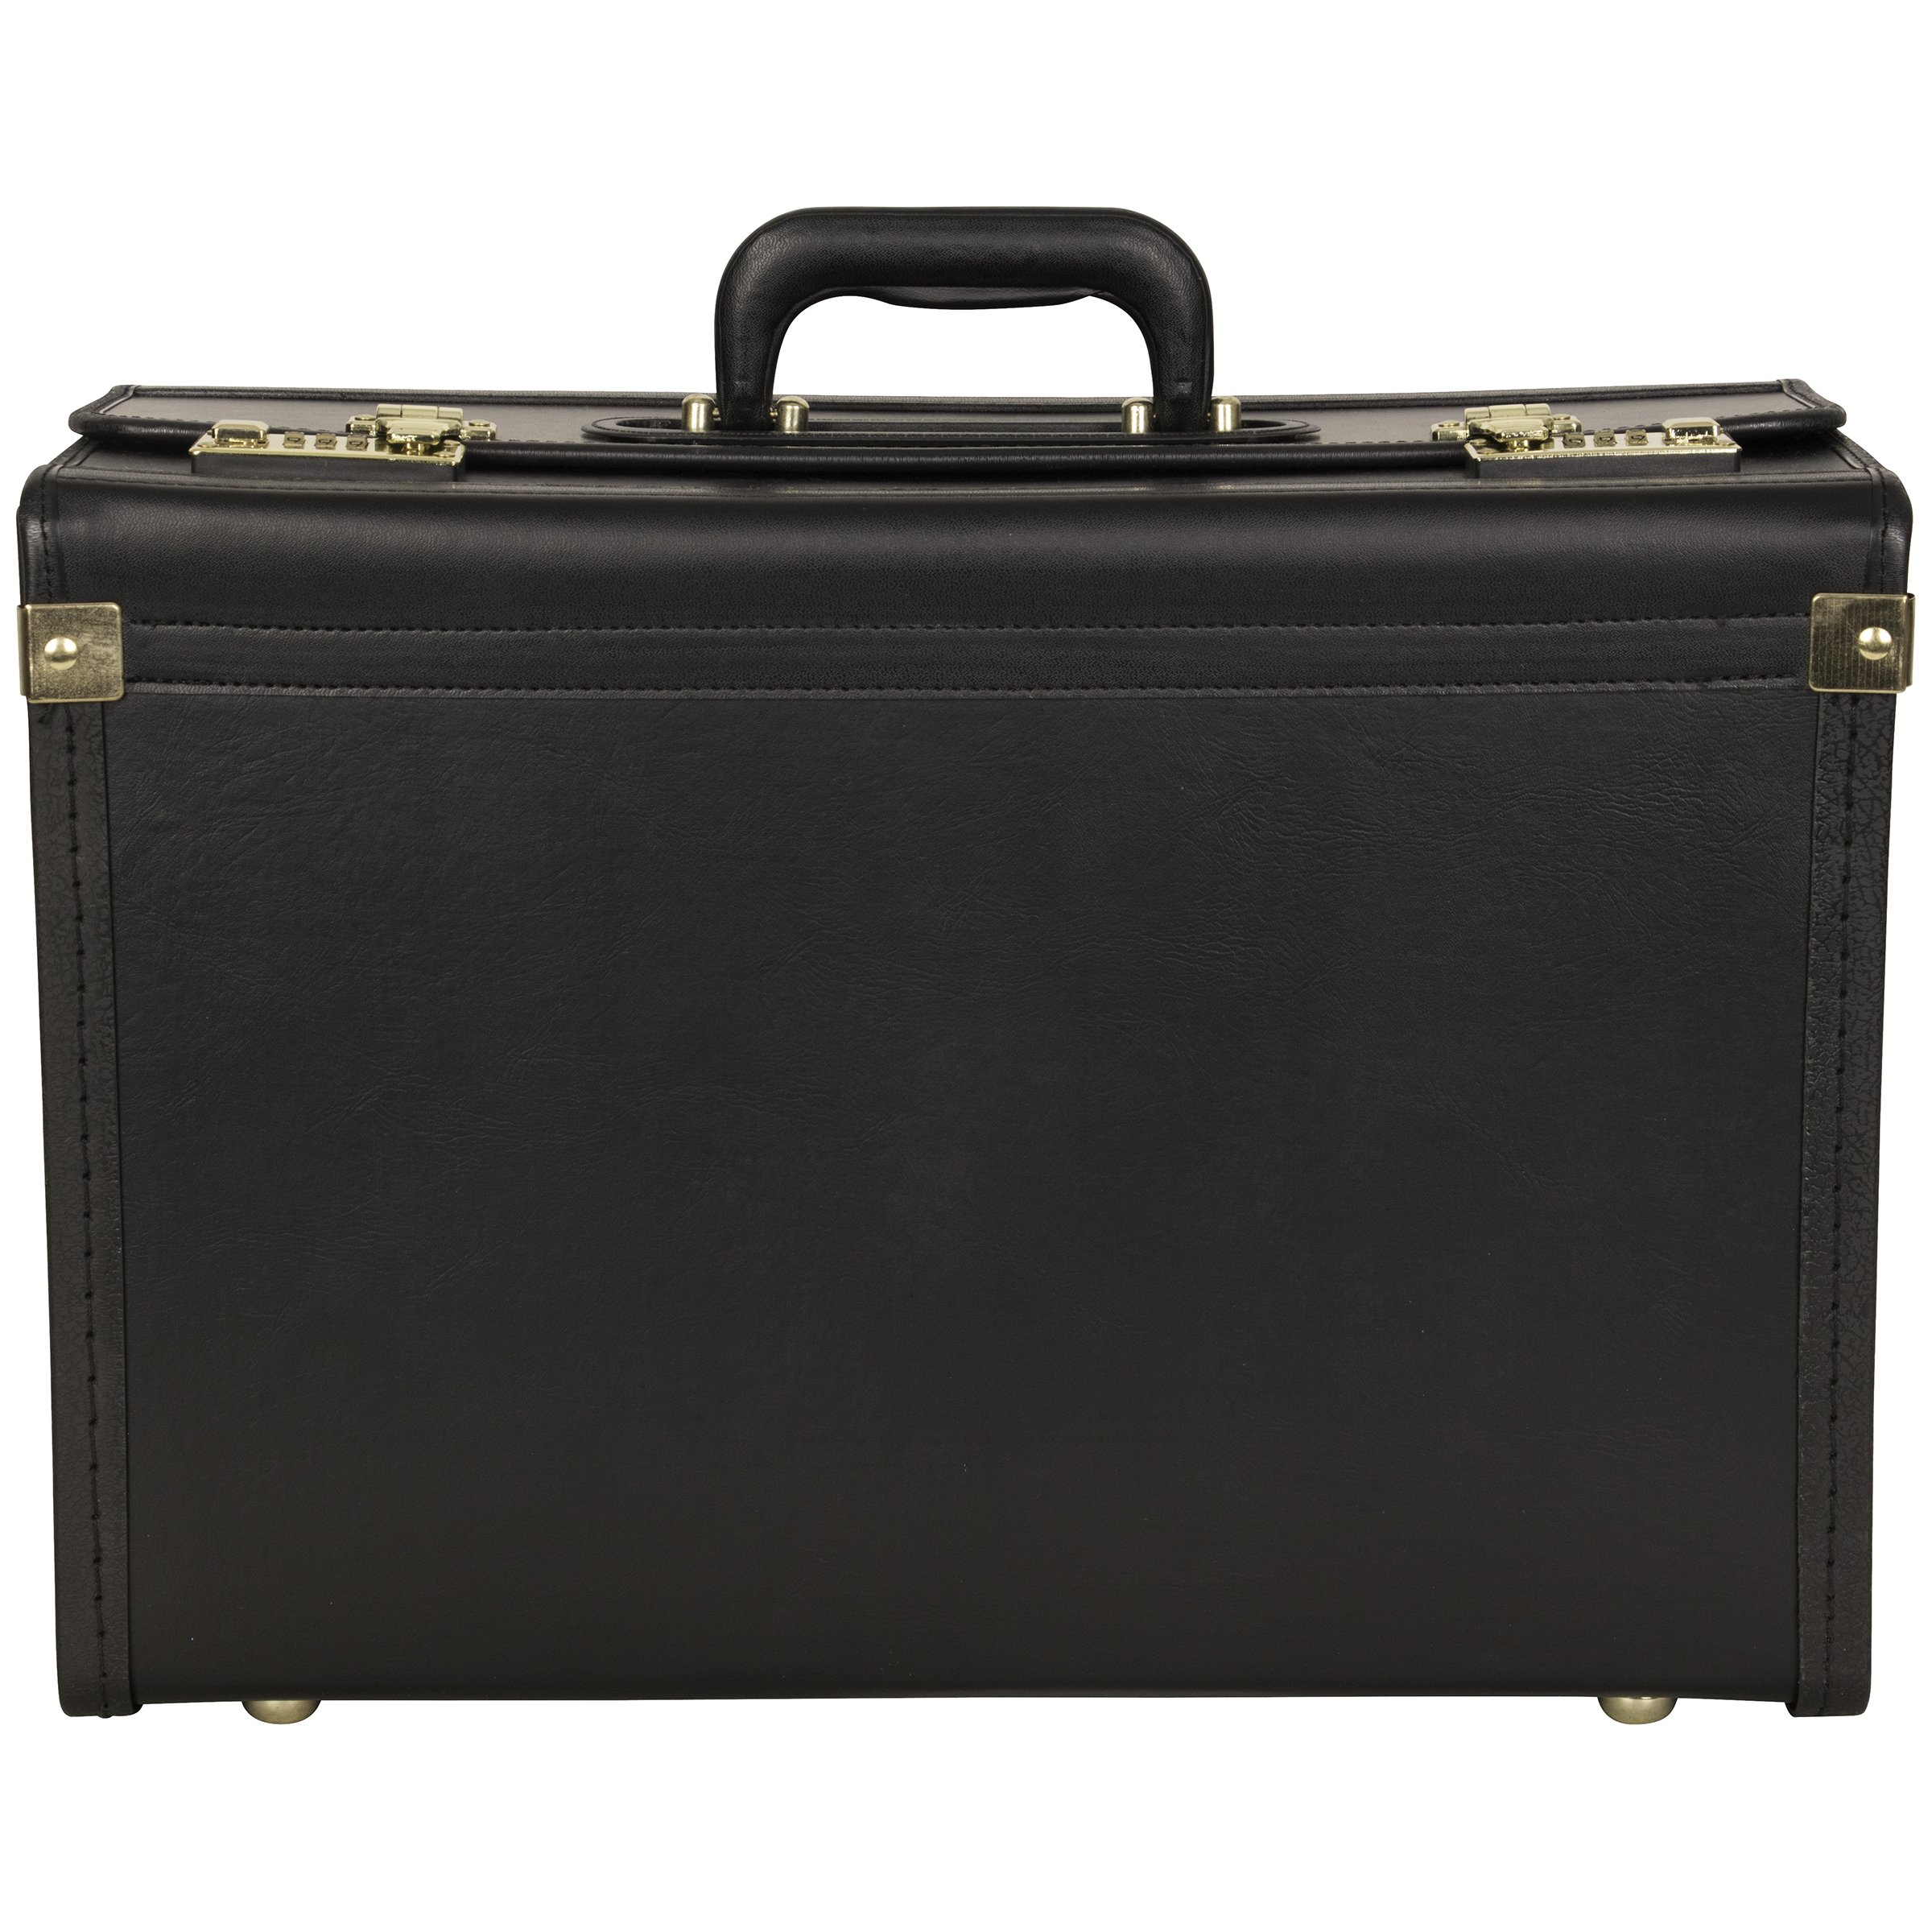 Heritage Vinyl Catalog Case, 13in.H x 18 1/2in.W x 8in.D, Black